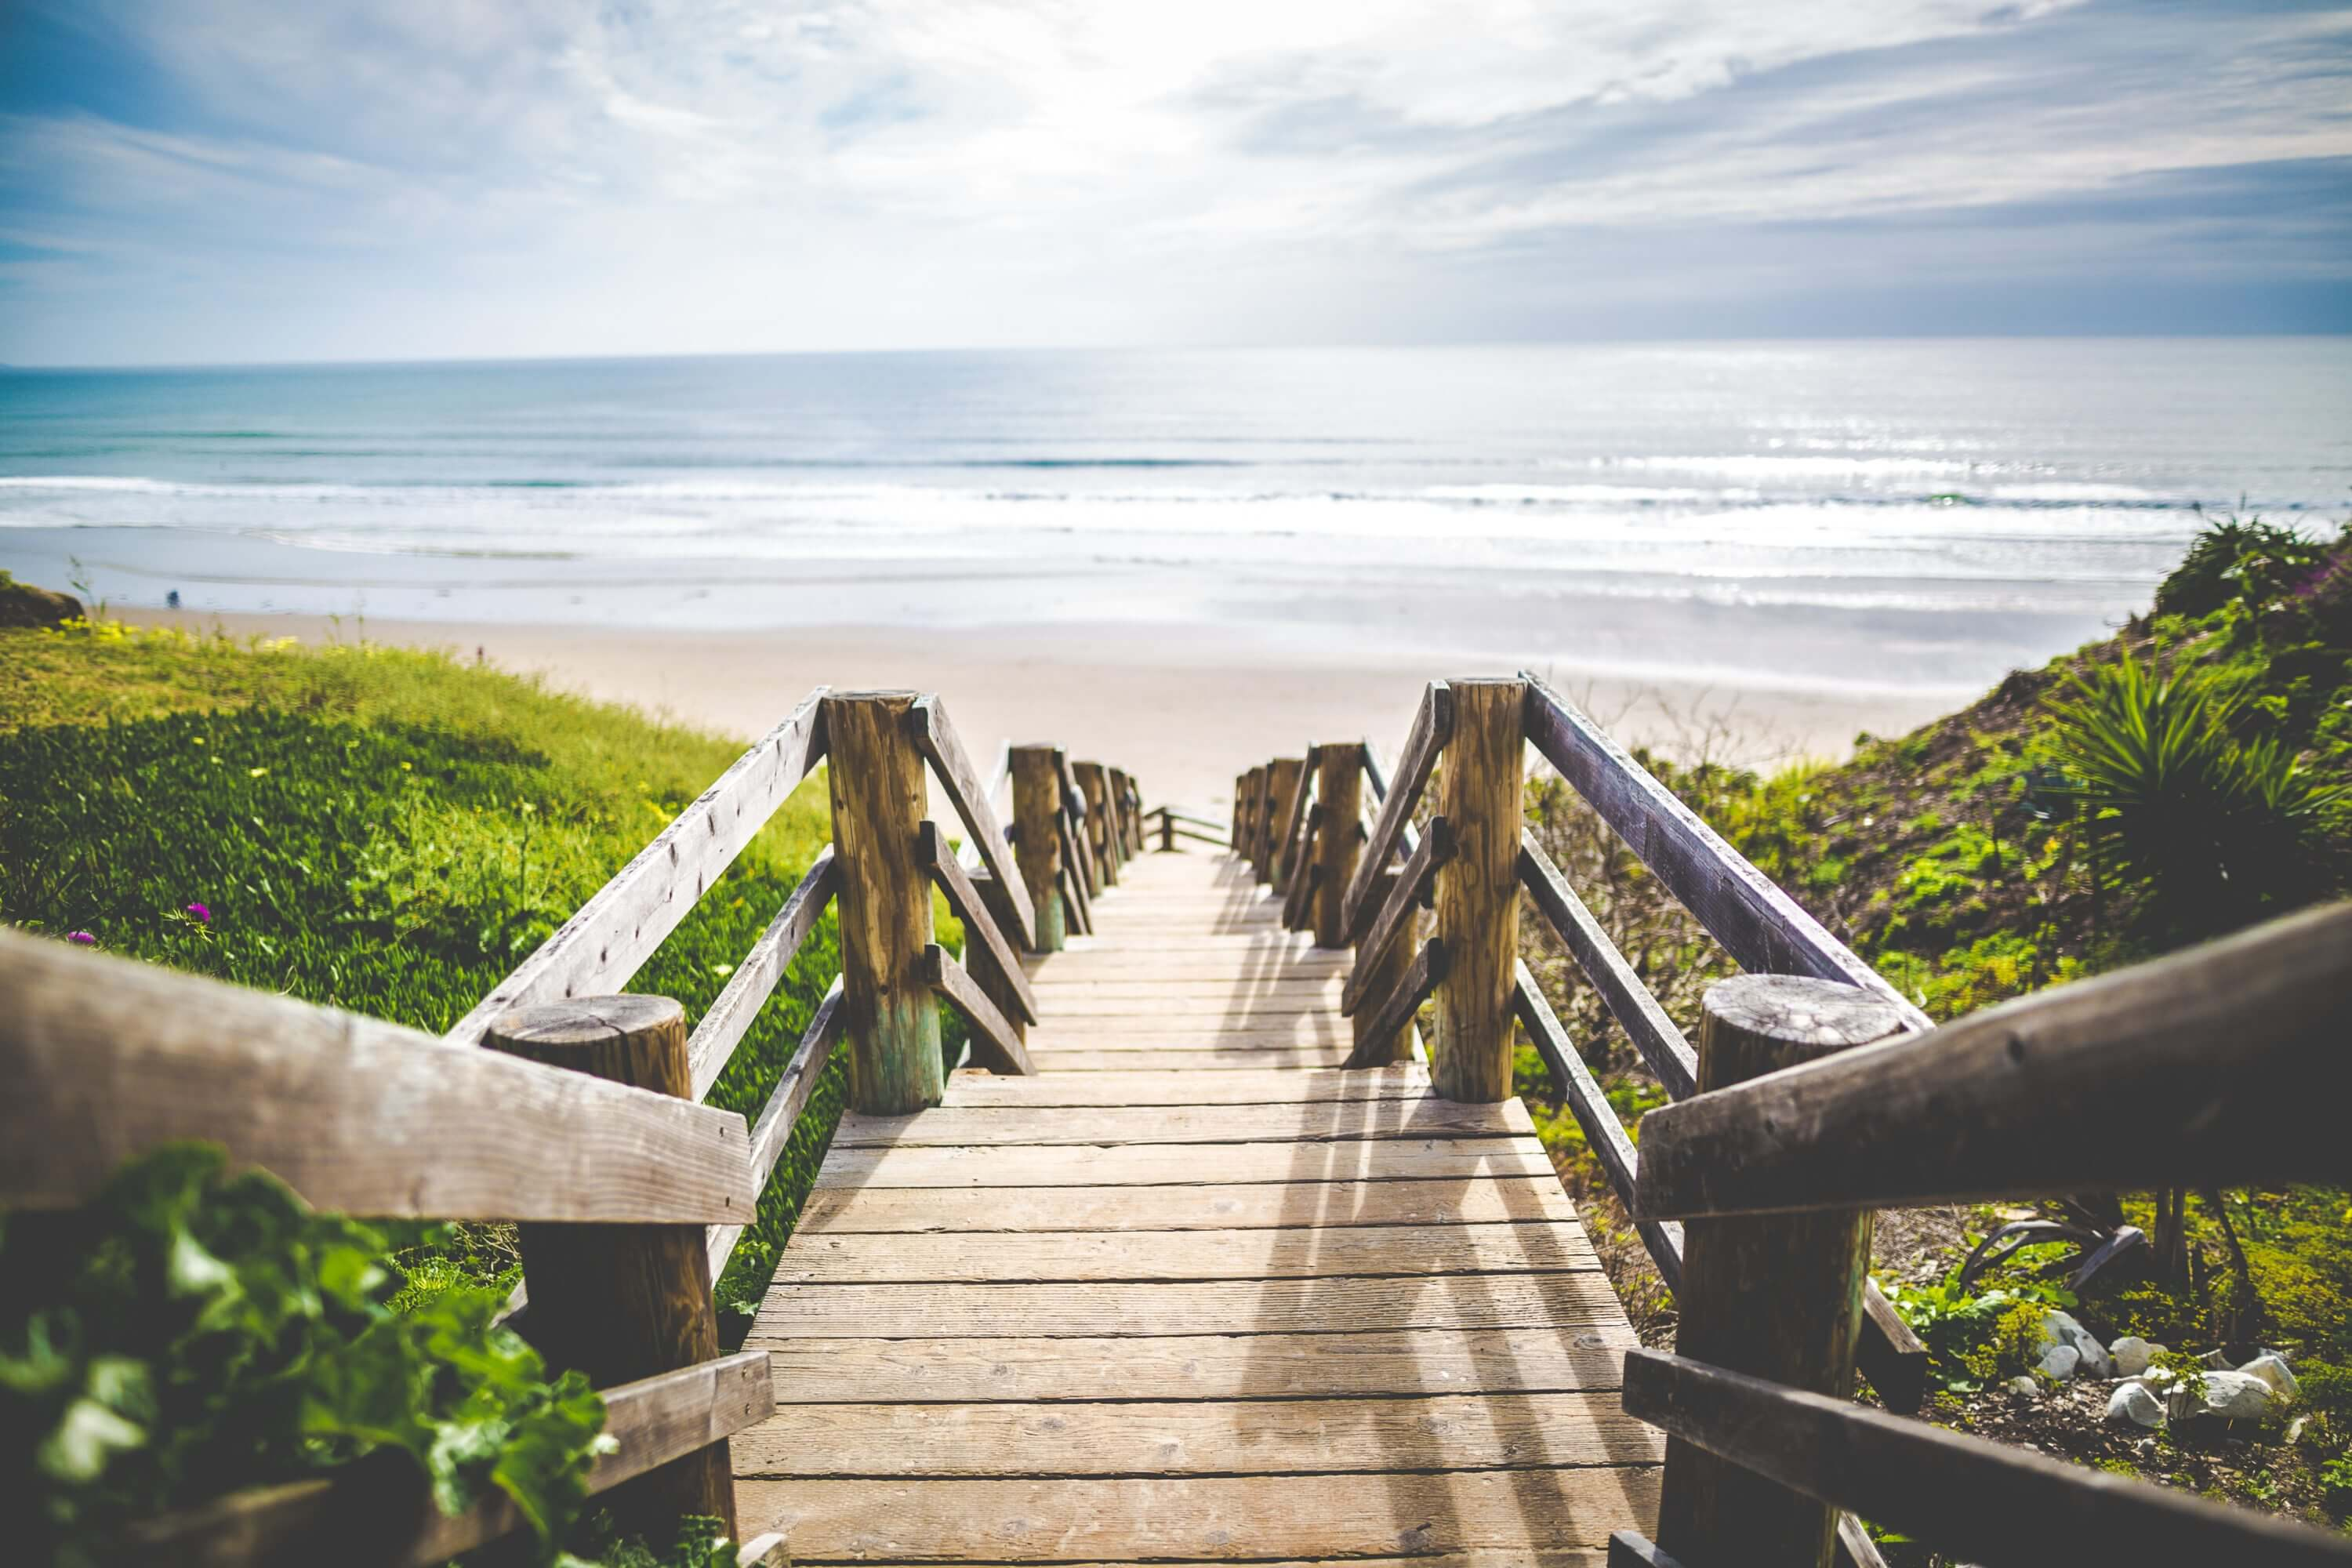 Wooden stairs leading down towards beach